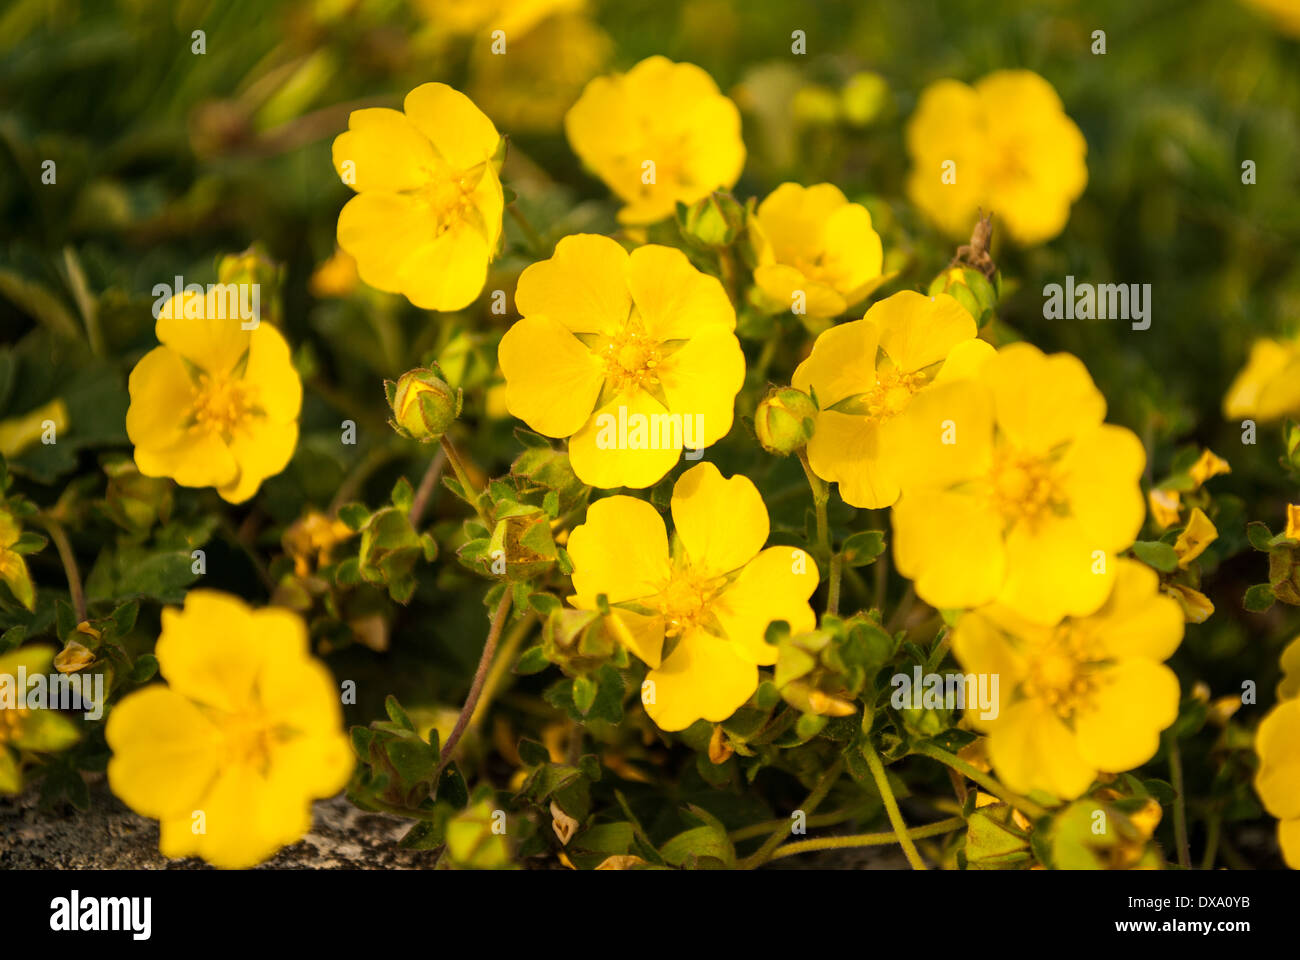 Flowerbed Of Little Yellow Flowers Stock Photo 67832447 Alamy